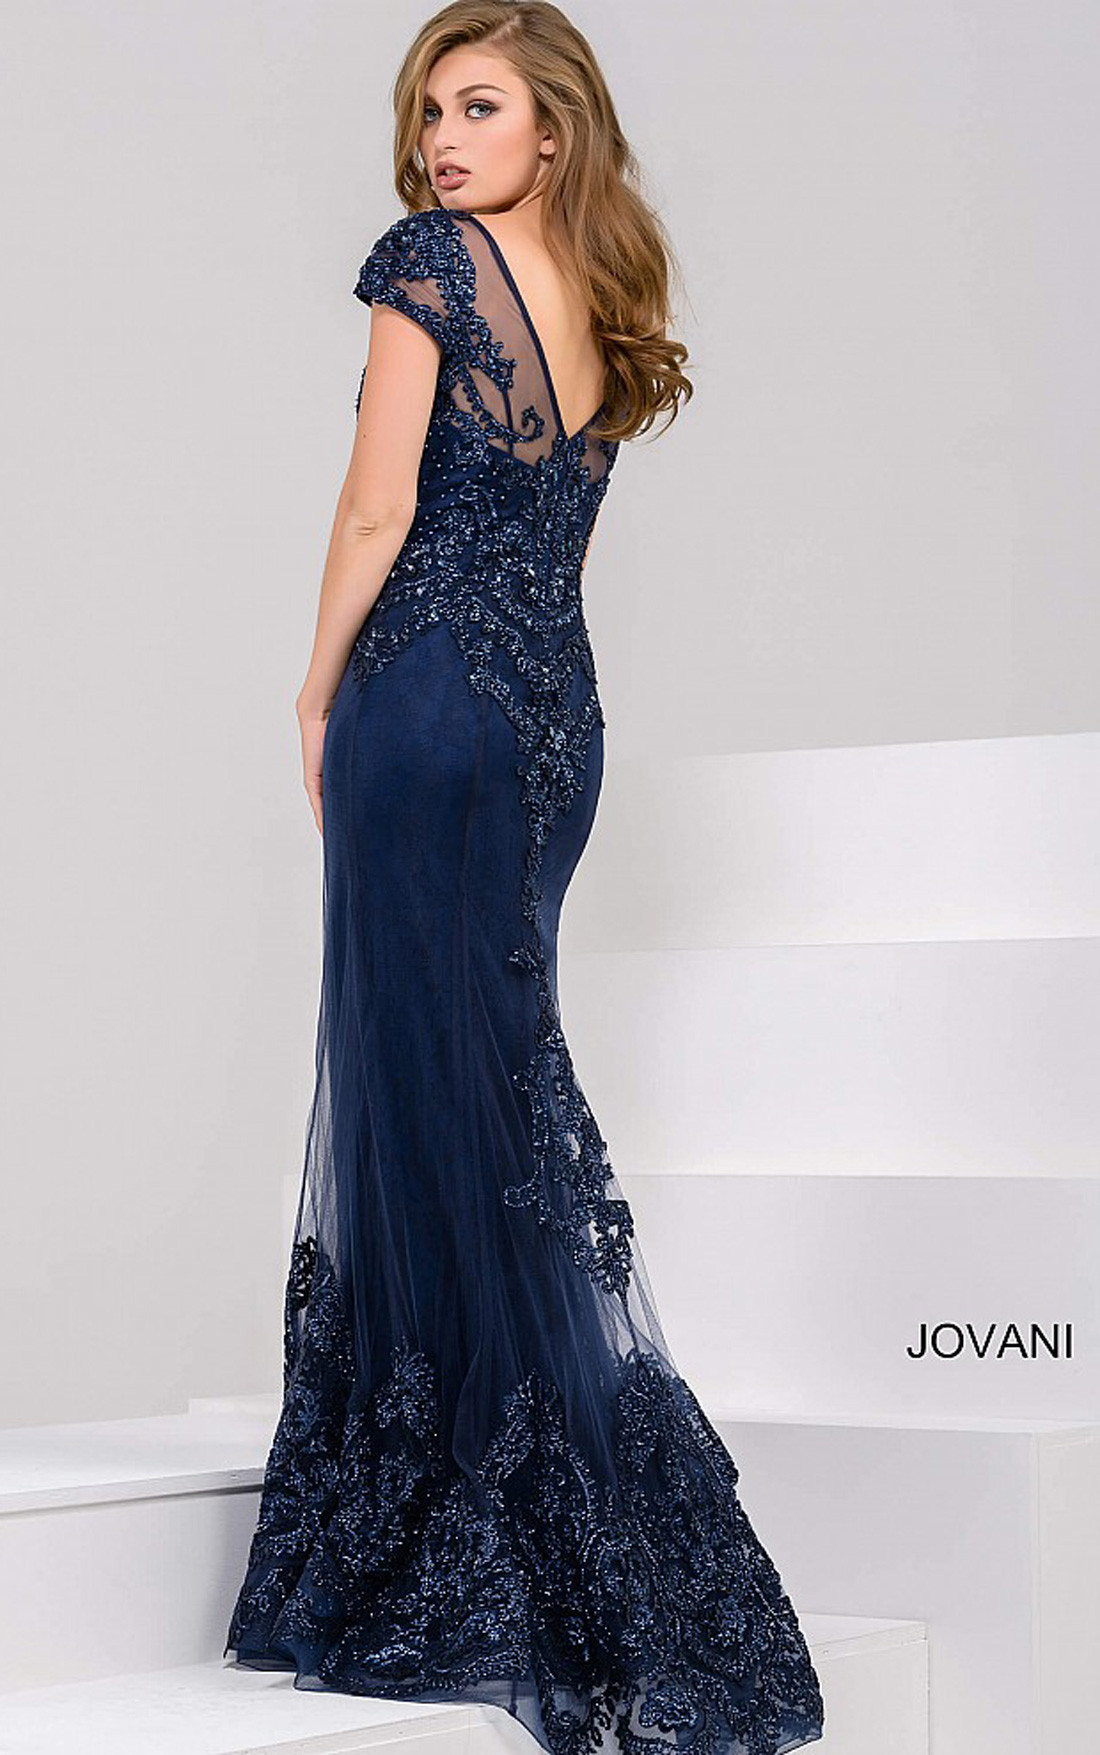 Jovani - Navy Embellished Cap Sleeves Sheer Neckline Dress (39483)